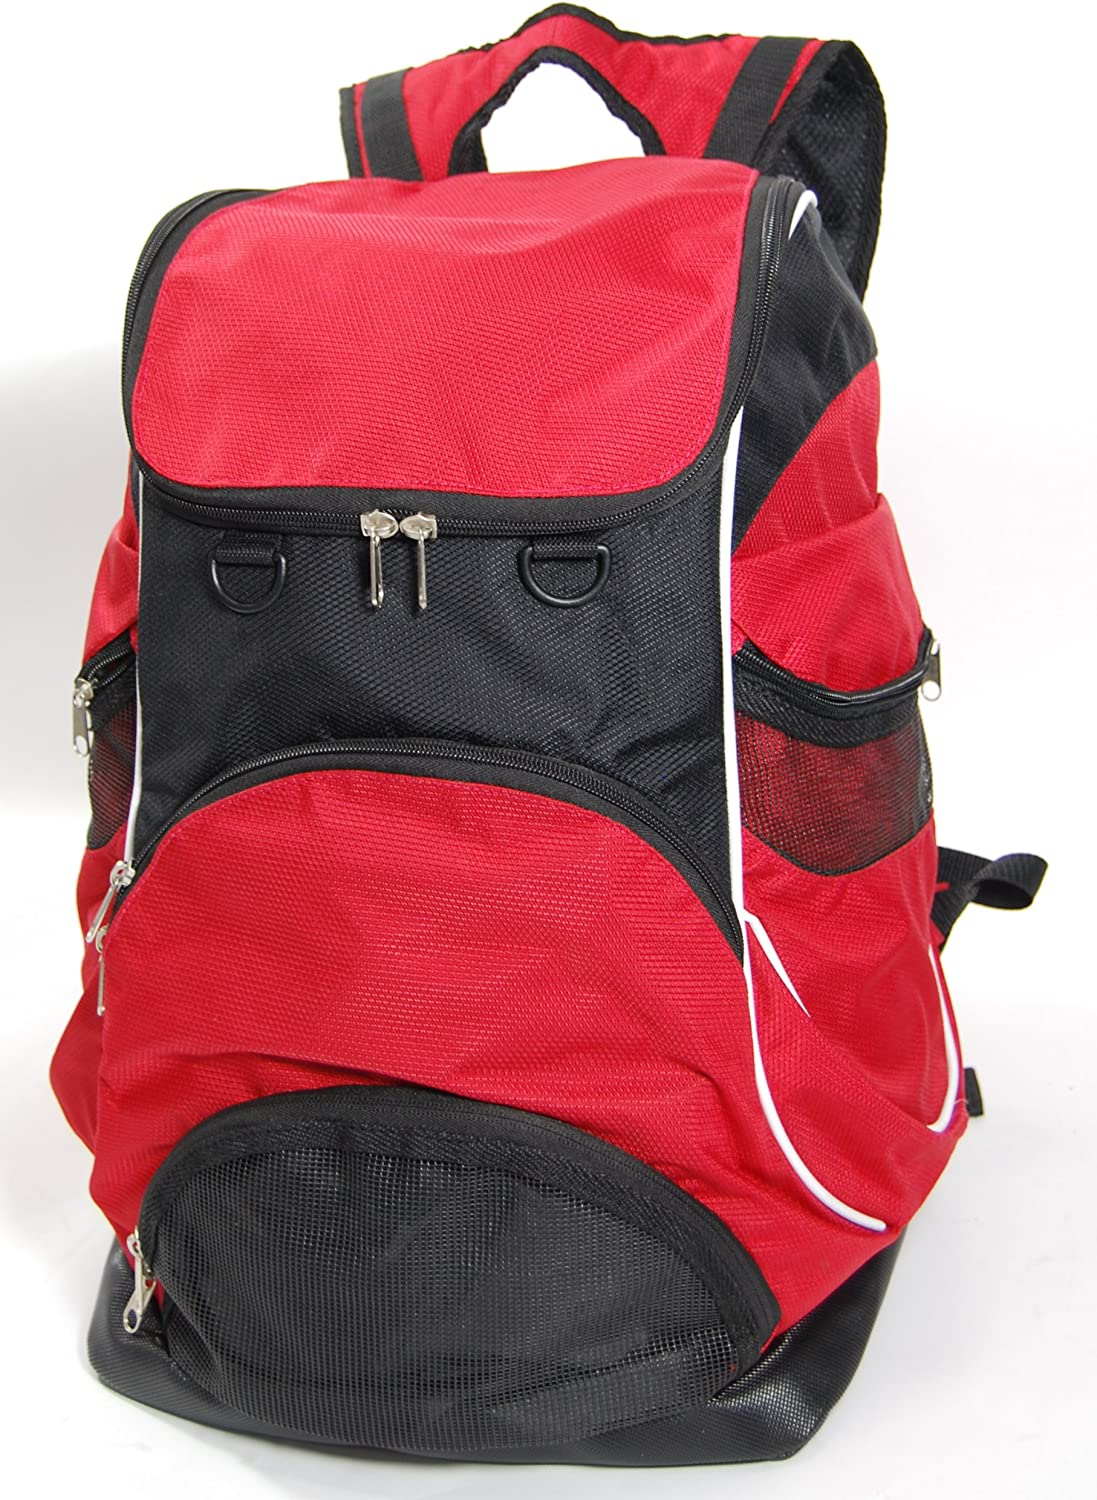 Elite Team Swimmer Backpack, Large Swimming Backpack with Pocket for Shoes Wet Items – Red